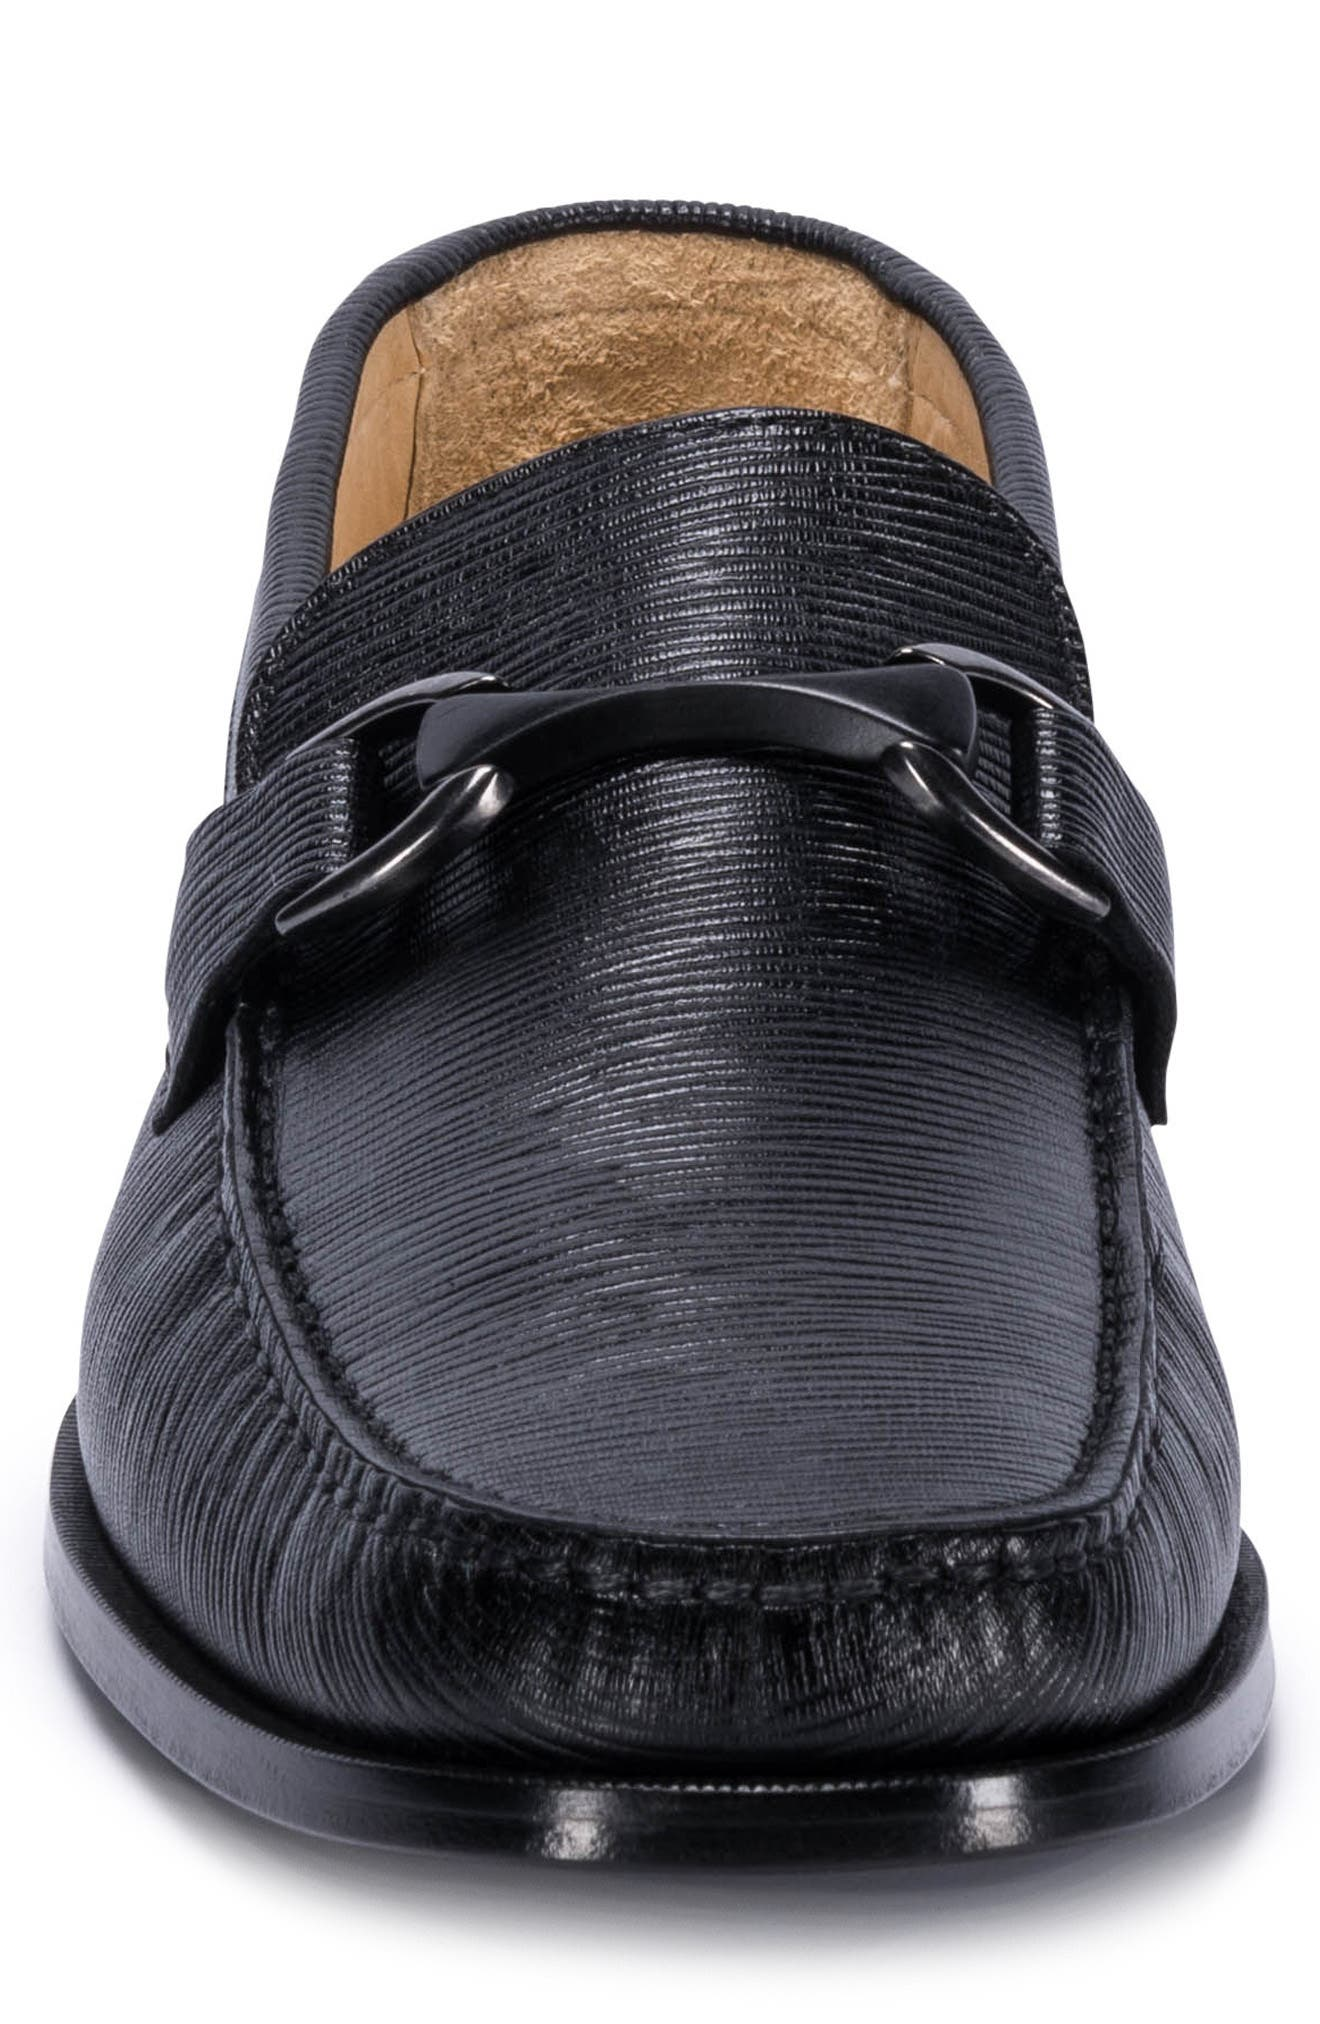 Bergamo Bit Loafer,                             Alternate thumbnail 4, color,                             Nero Leather